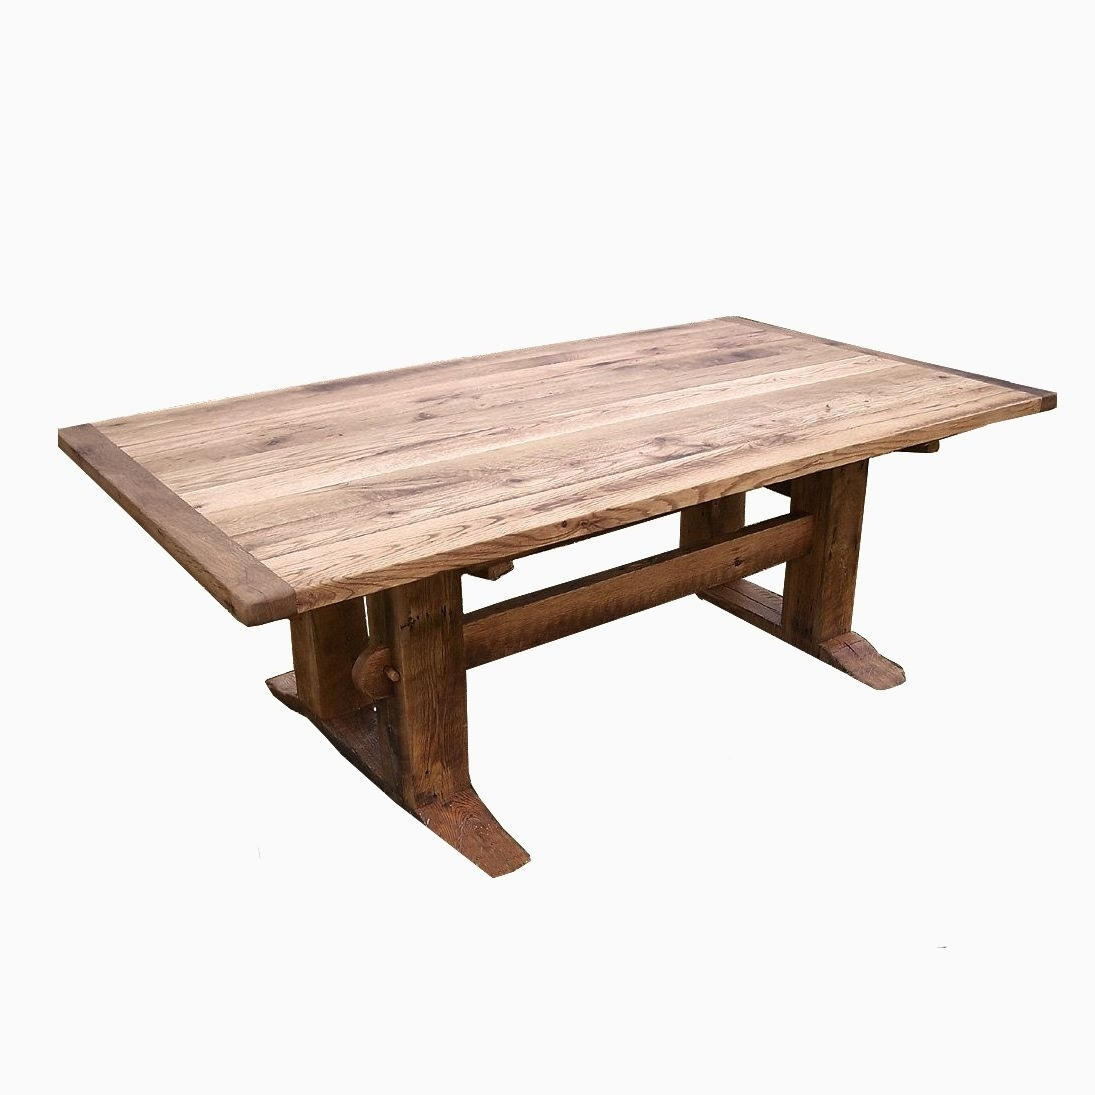 Mission Dining Tables | Craftsman, Arts And Crafts, Stickley Style Throughout 2017 Craftsman Round Dining Tables (Image 11 of 20)